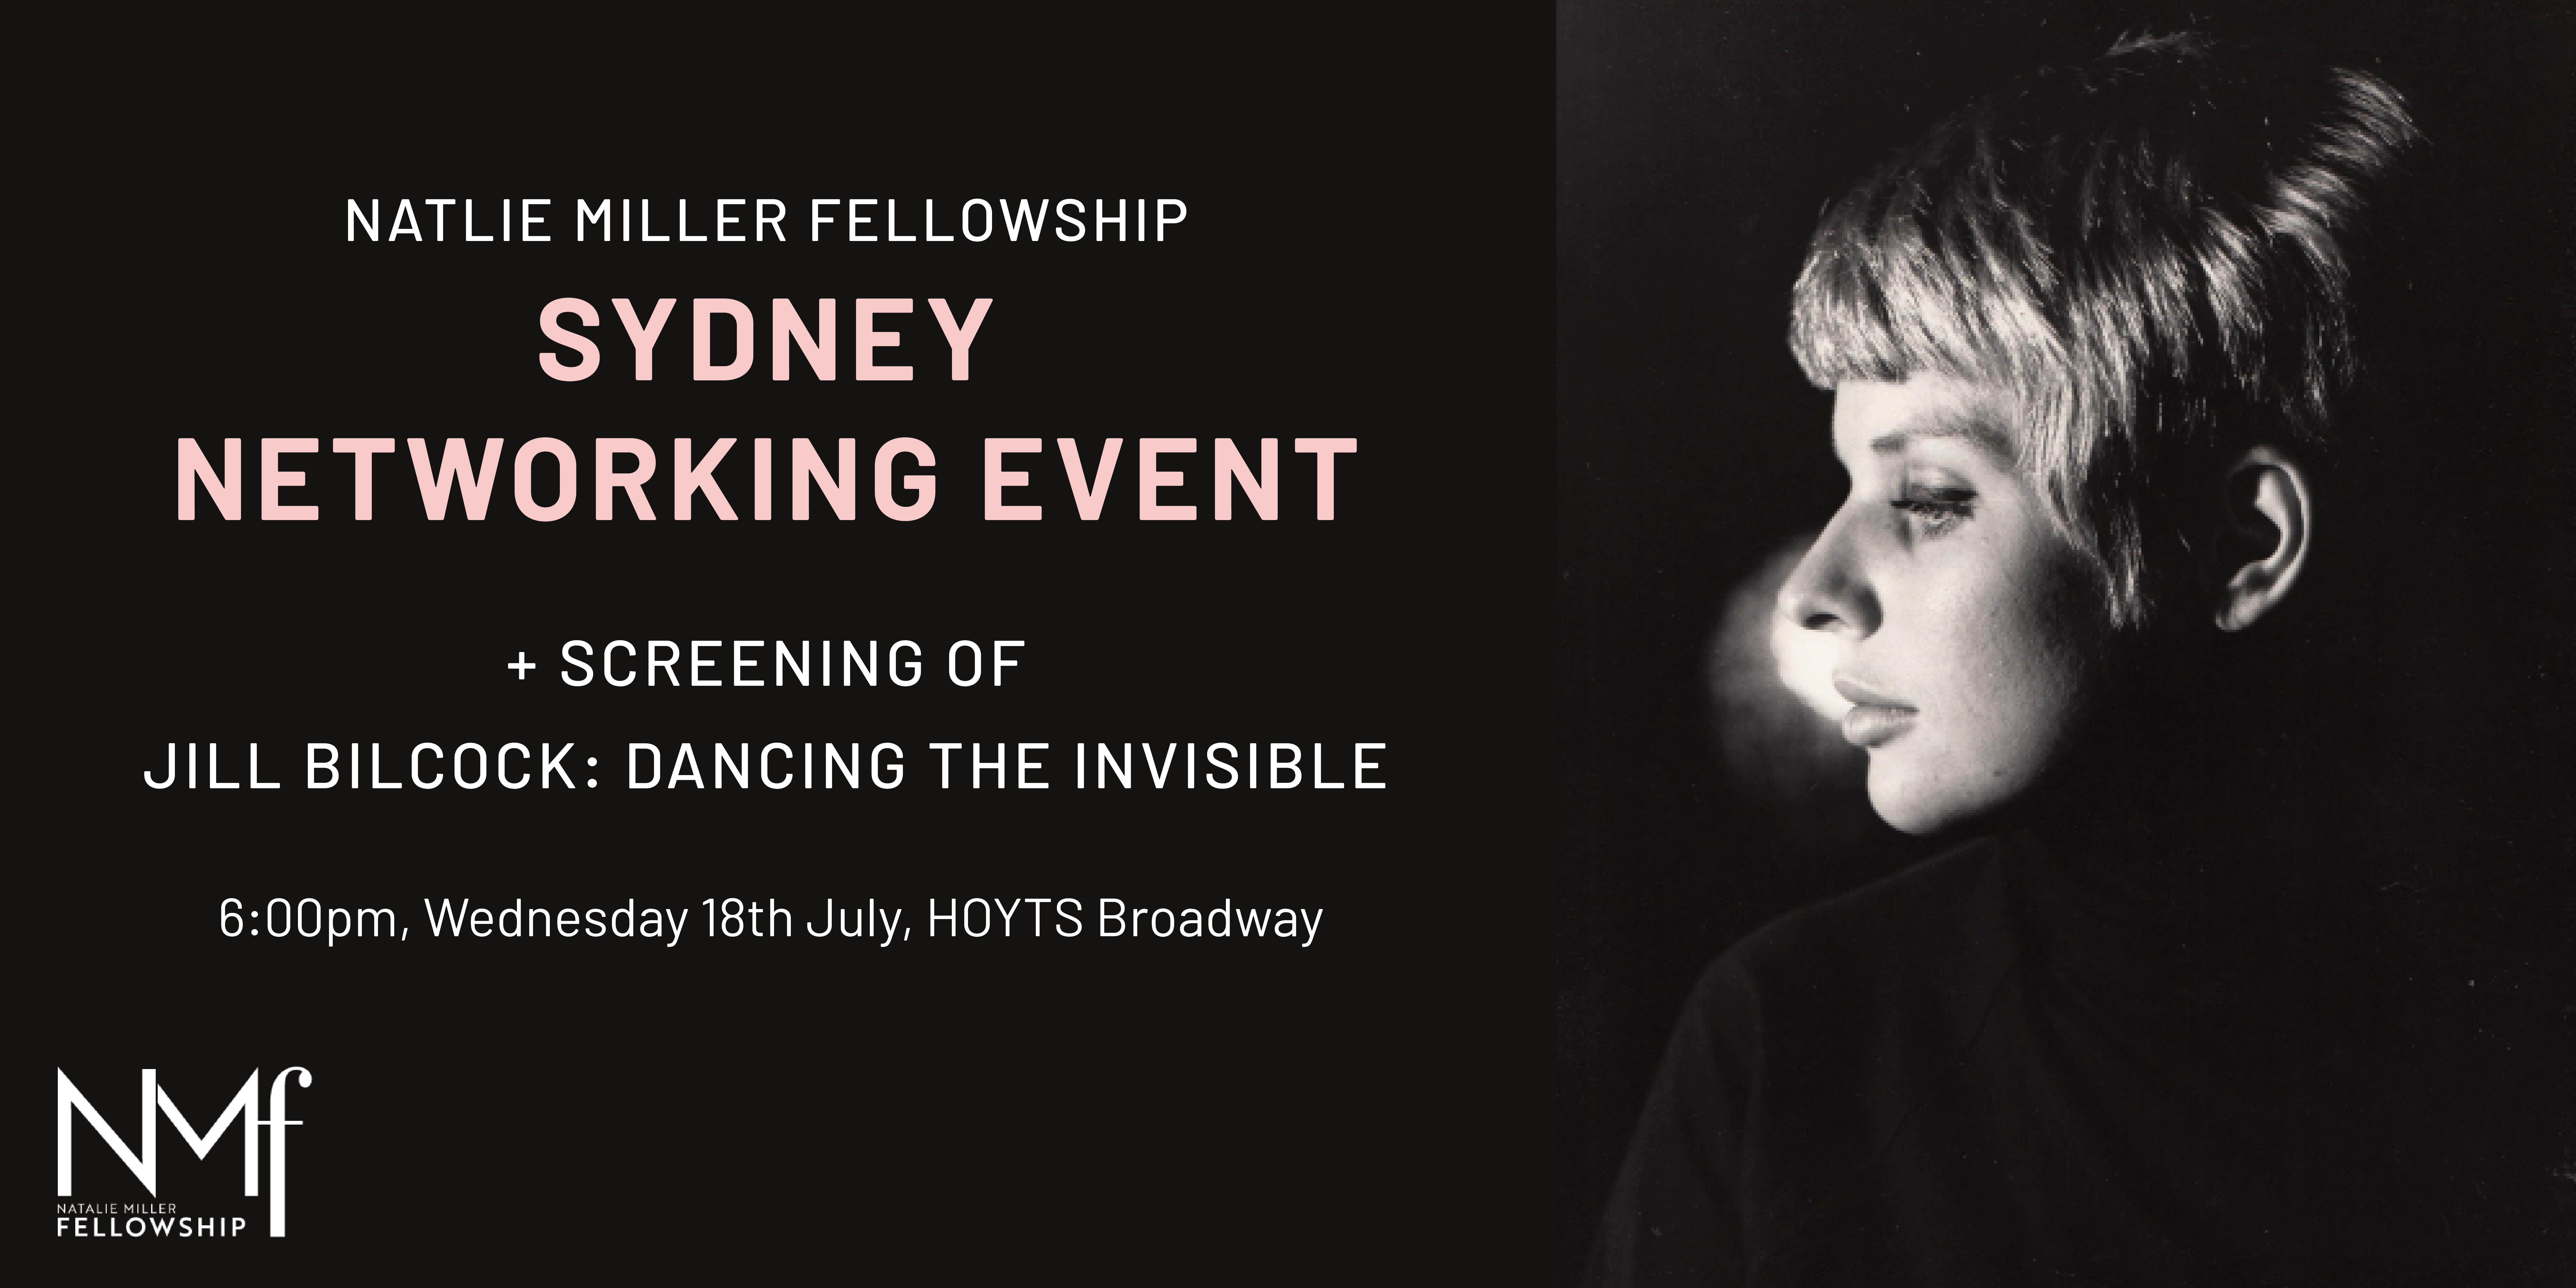 Invitation to NMF Sydney Networking Event + Screening of Jill Bilcock: Dancing The Invisible